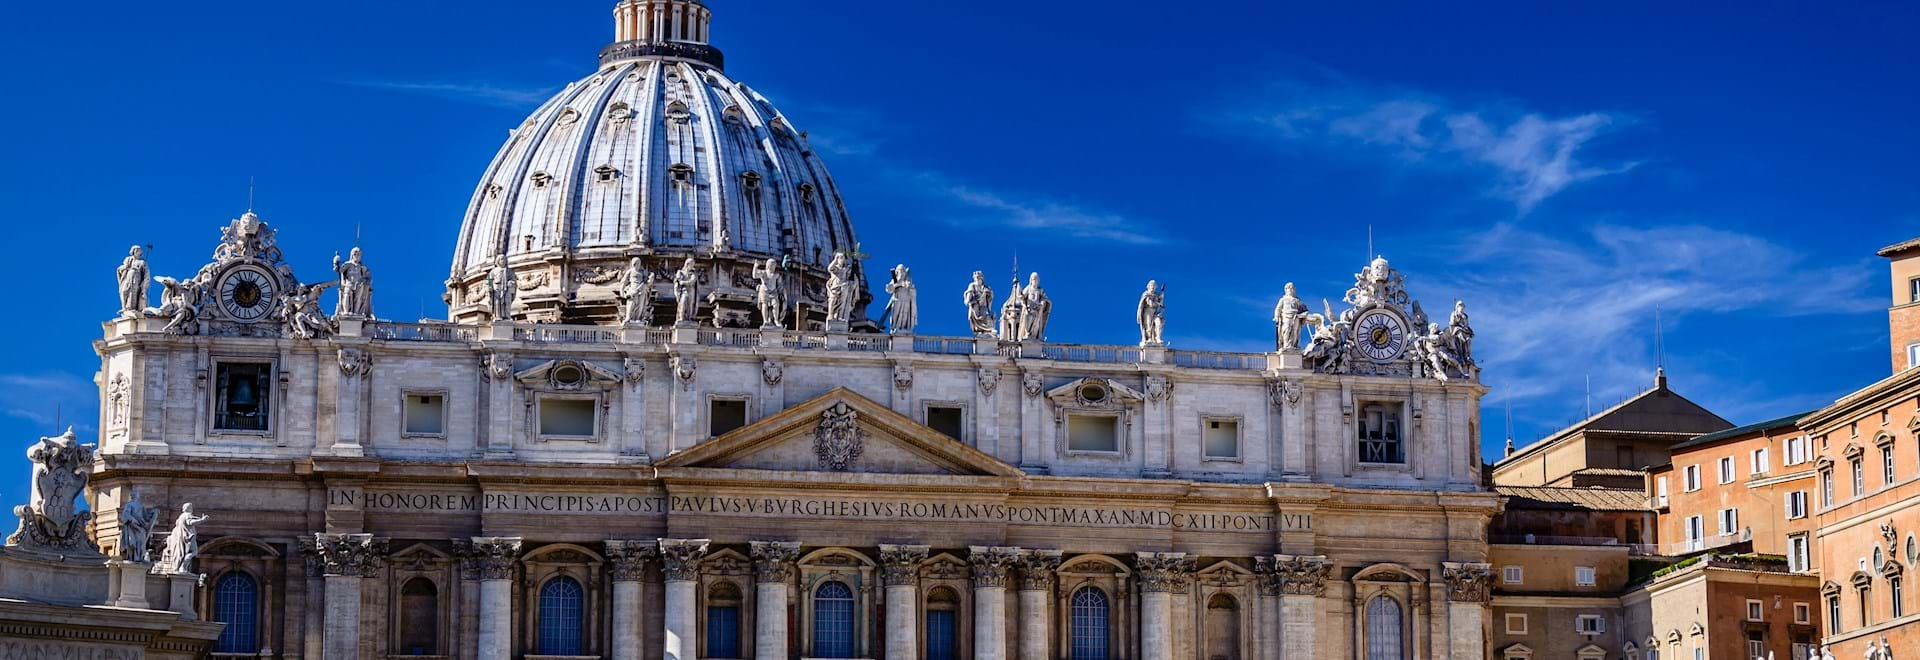 St. Peter's Basilica on sunny day